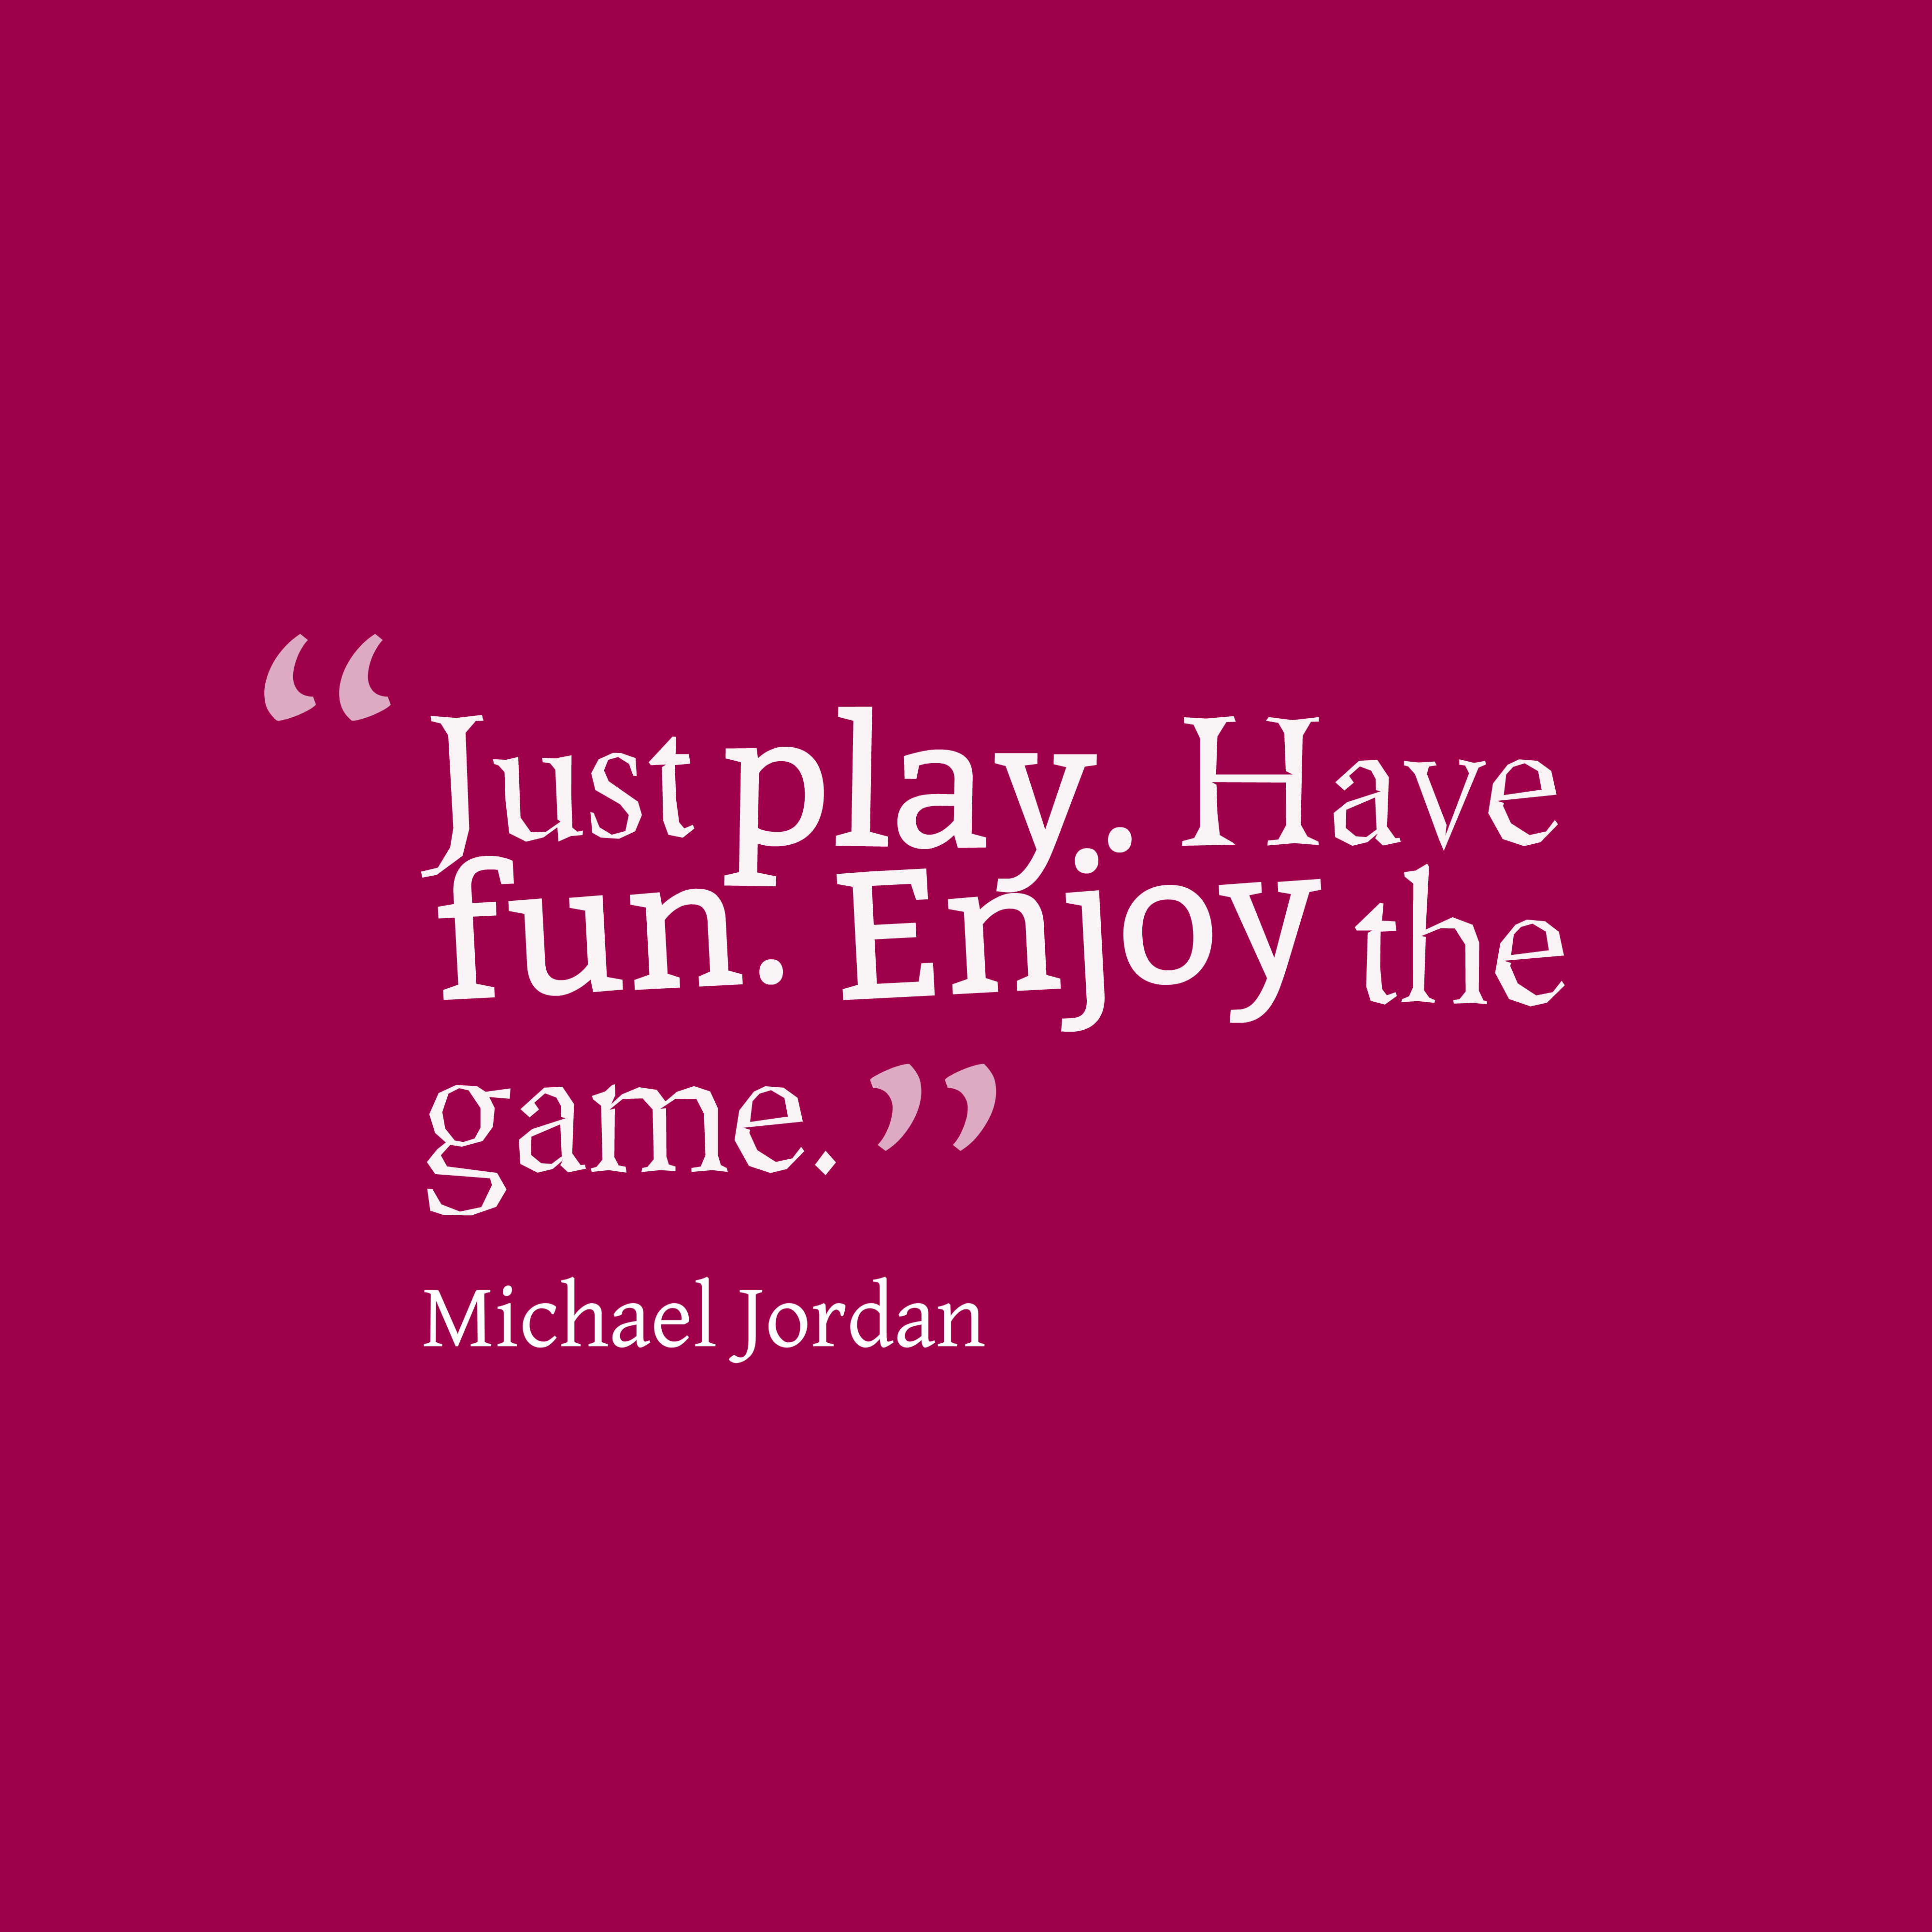 Just Play Have Fun Enjoy The Game Michael Jordan Quoteoftheday Duanemarino Com Quote Work Motivational Daily Inspiration Quotes Essay On